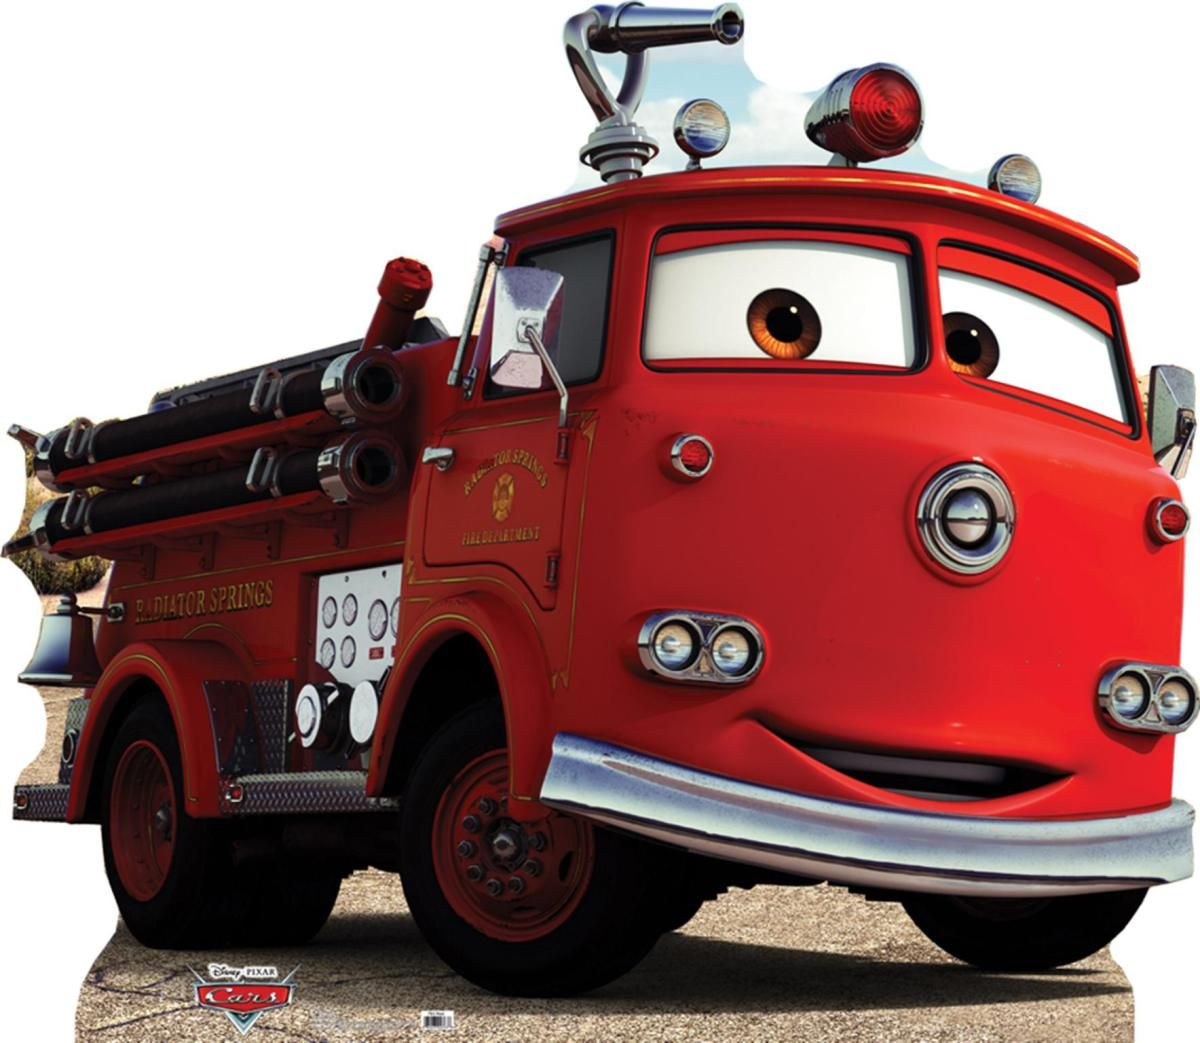 Red Firetruck With Images Disney Cars Disney Cars Birthday